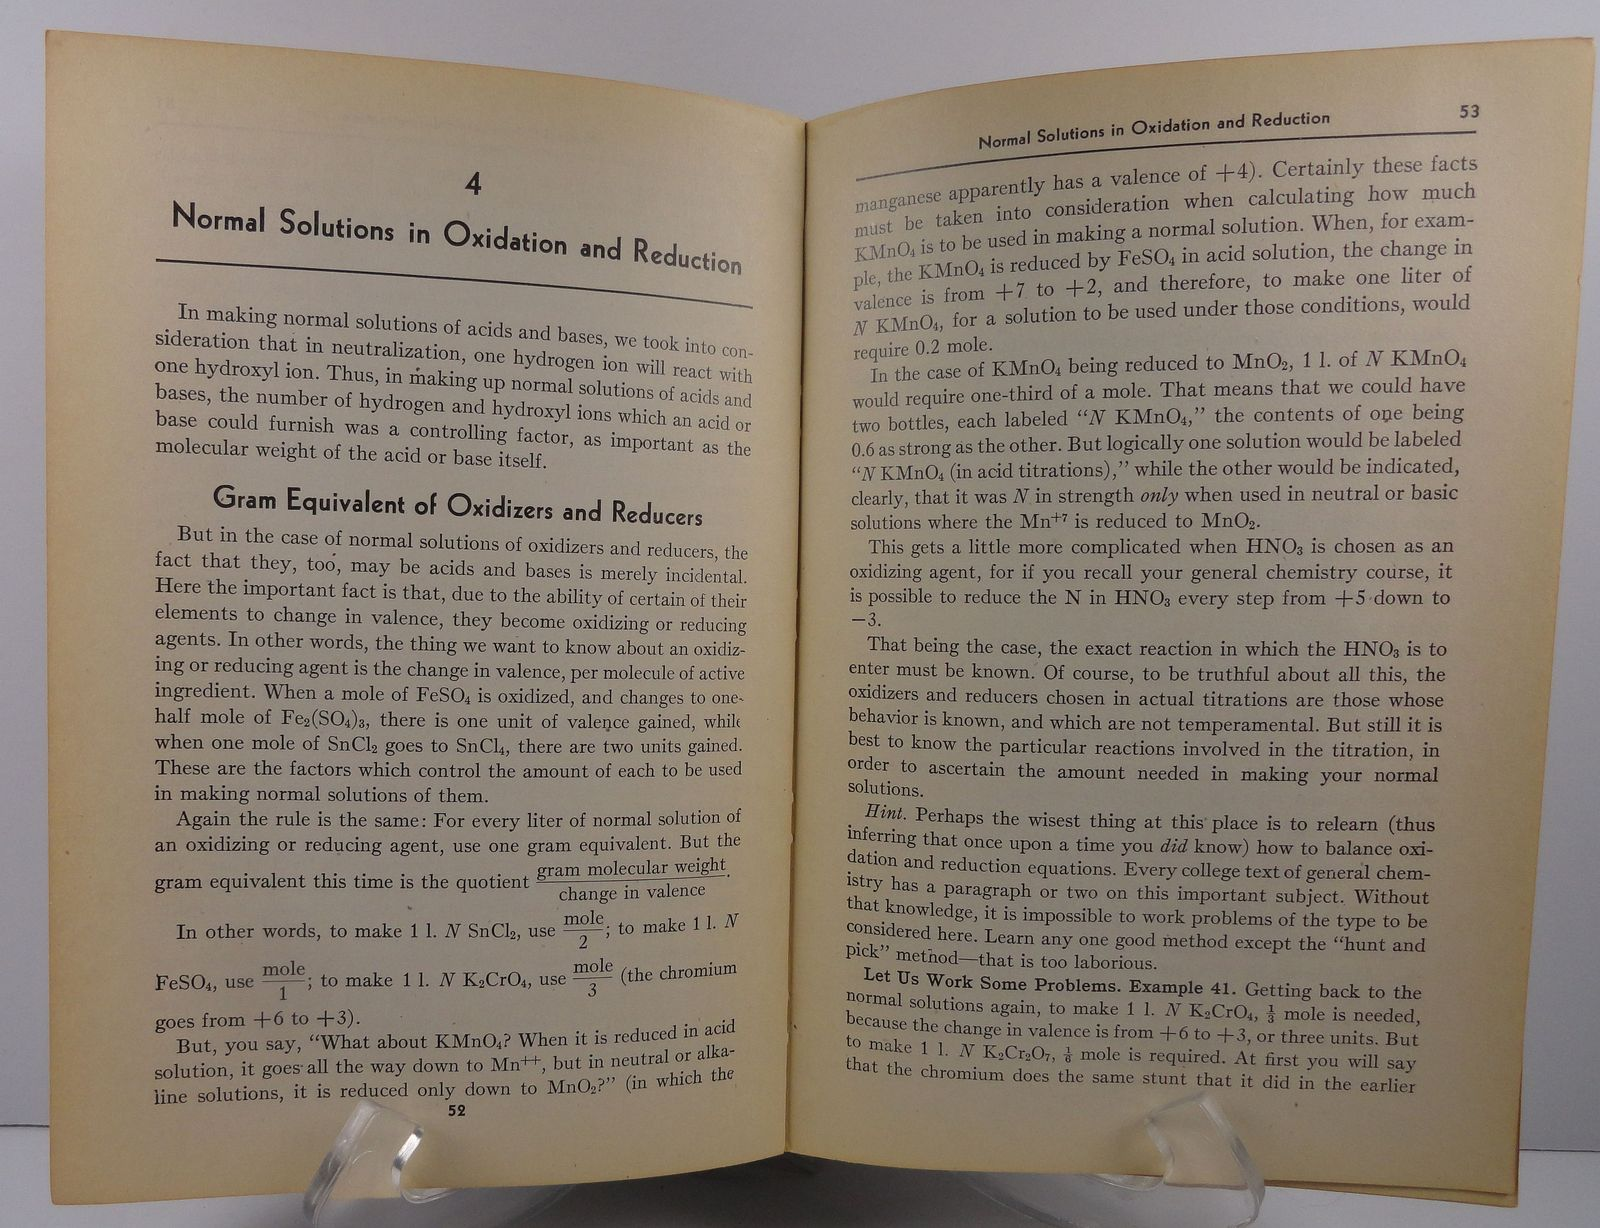 Problems in Quantitative Analysis by Saul B. Arenson 1948